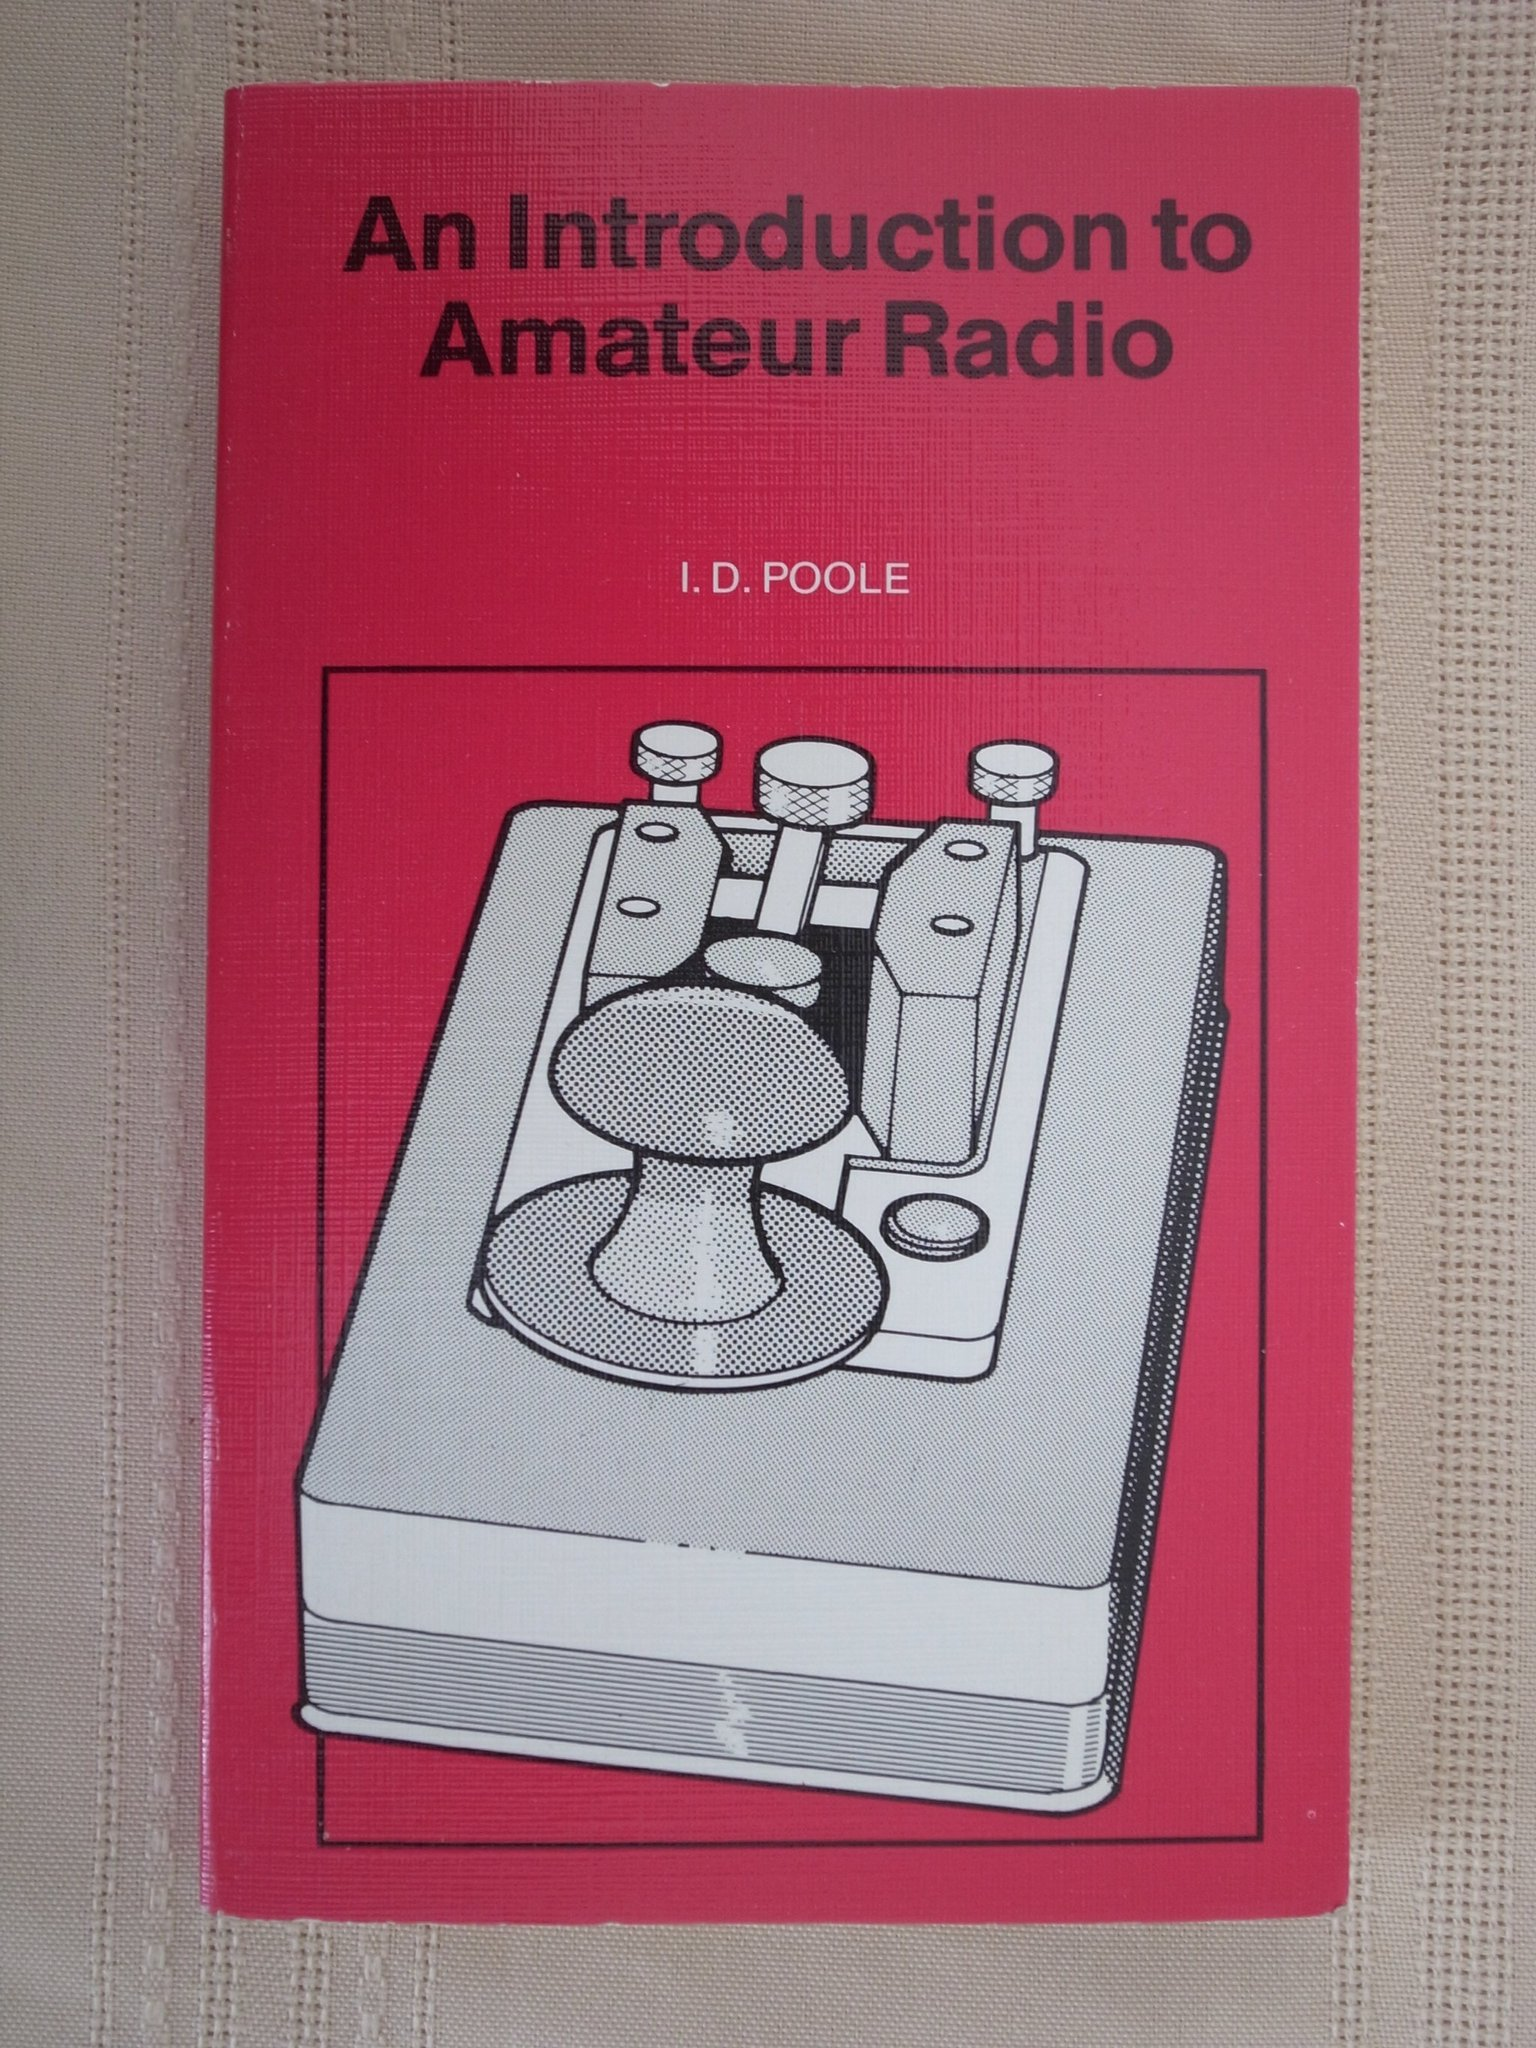 An Introduction to Amateur Radio, Intressant bok om amatörradio. Ca 150 sidor.